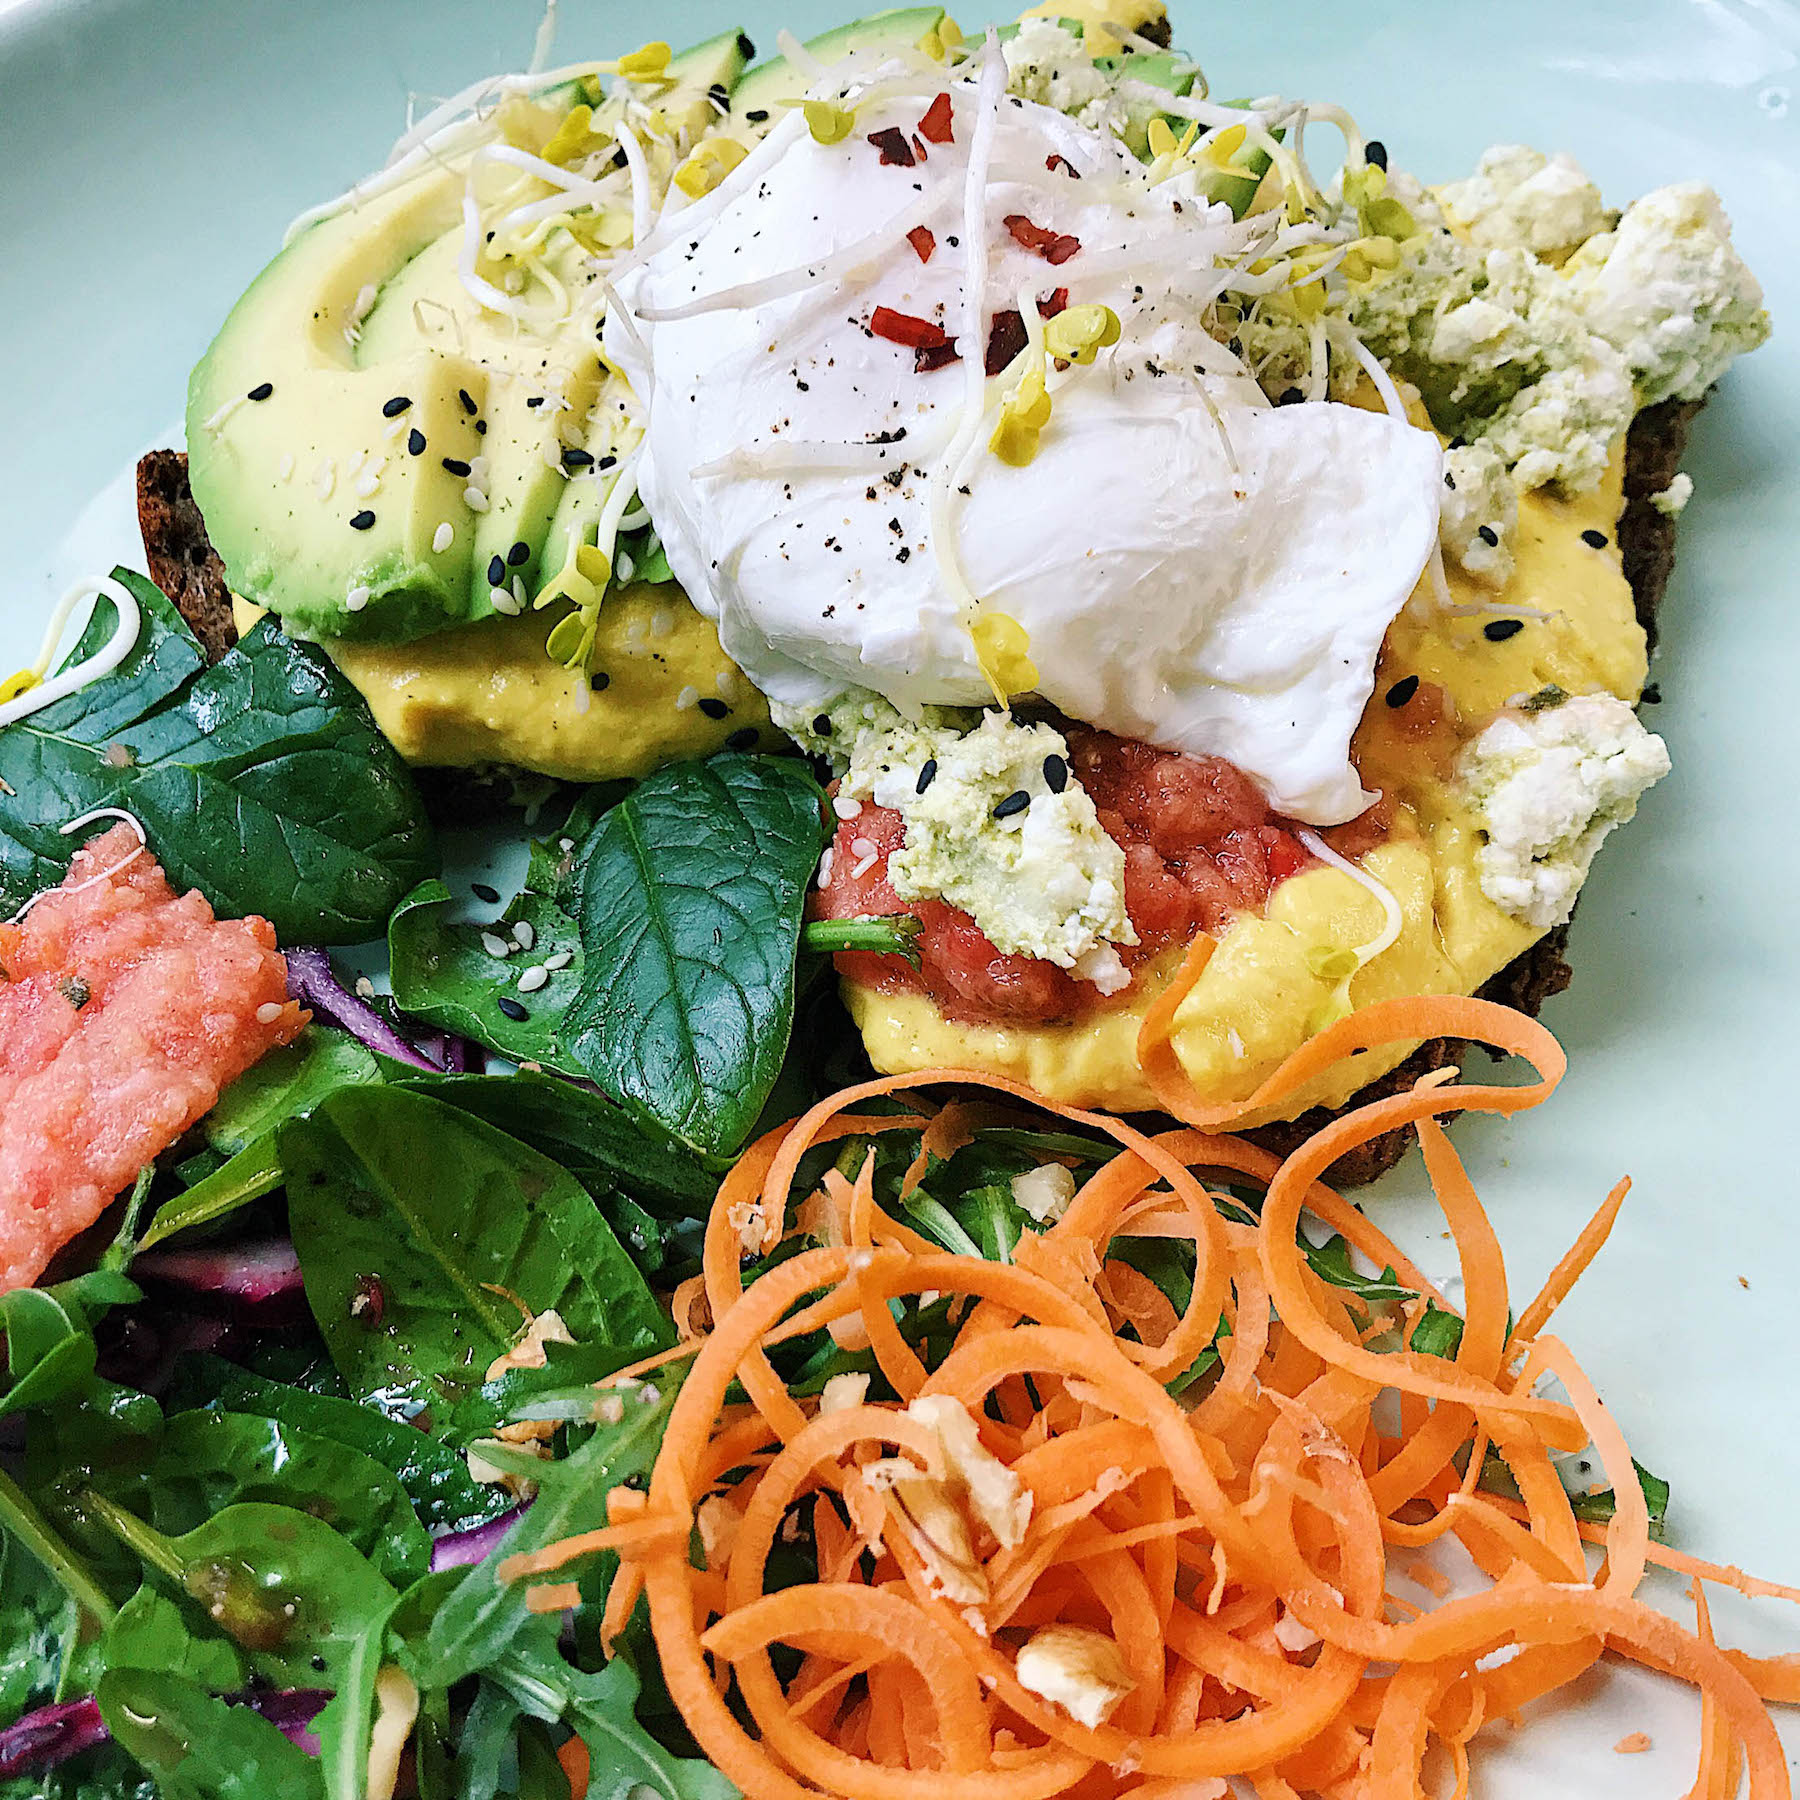 Avocai glutenfreies Café in Berlin suelovesnyc_glutenfreies_cafe_in_berlin_avocai_glutenfrei_glutenfreies_restaurant